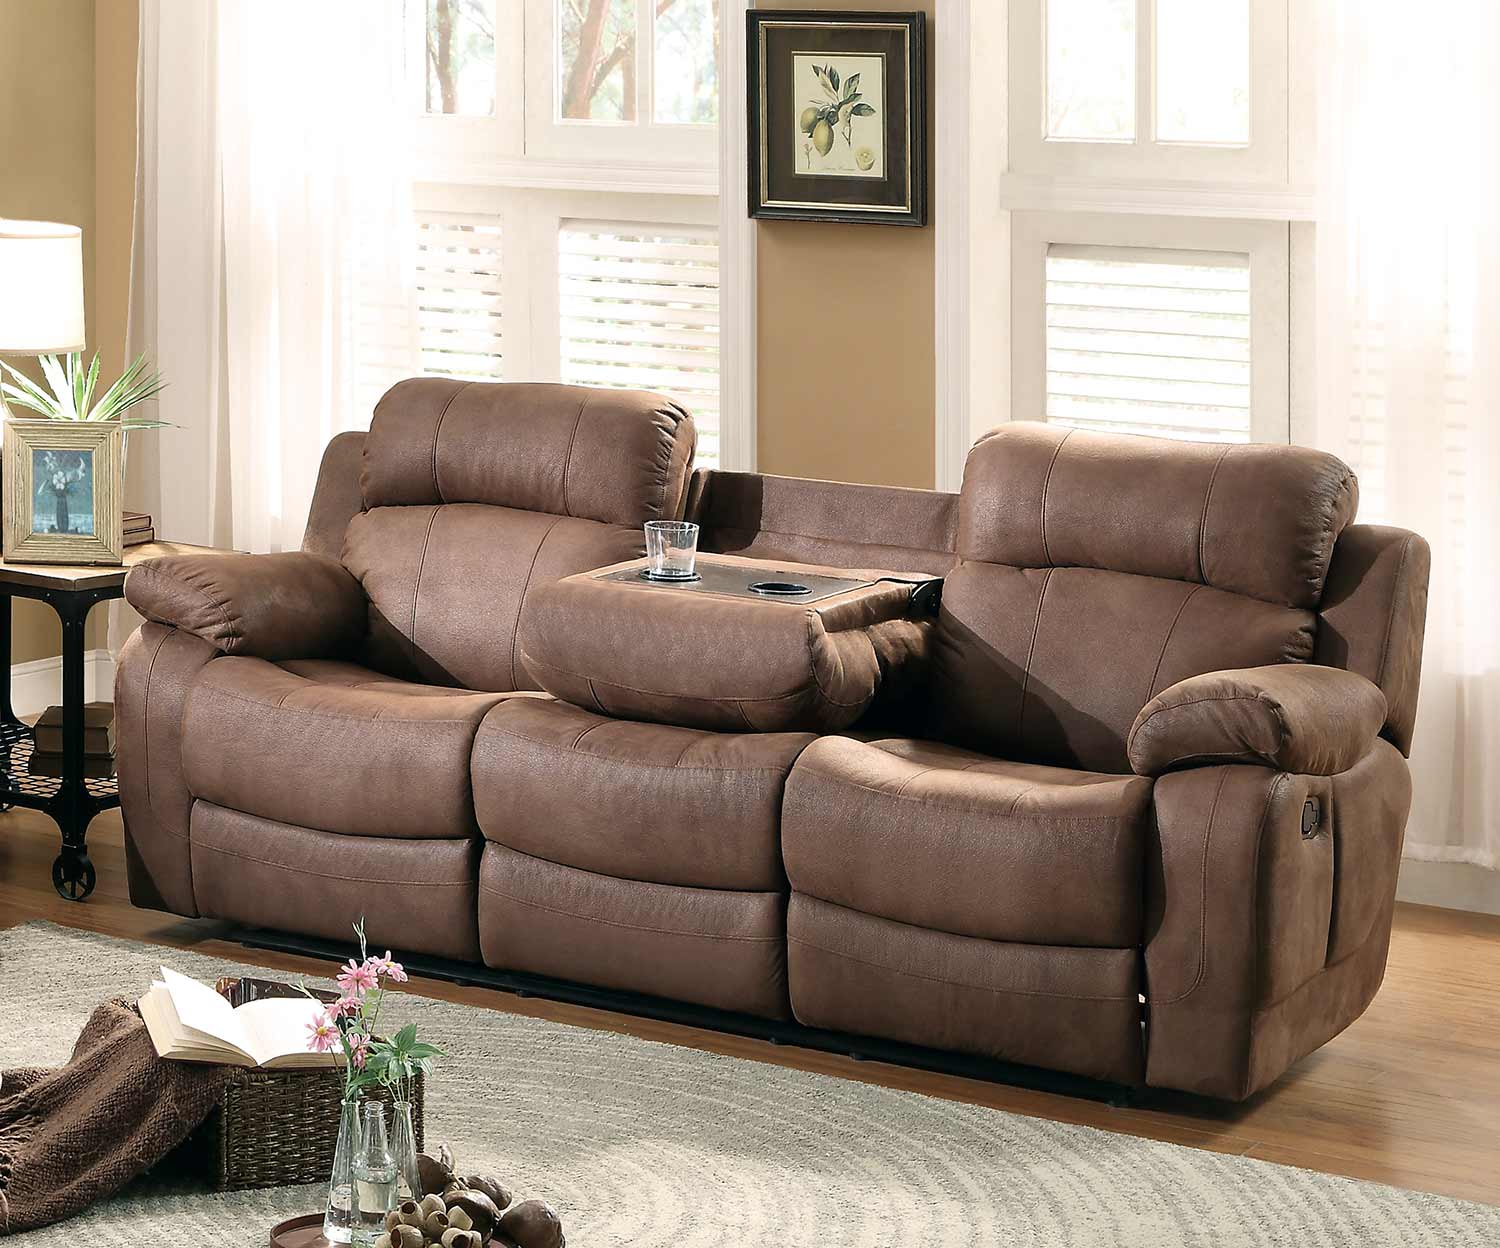 Homelegance Marille Double Reclining Sofa With Center Drop Down Cup Holders    Dark Brown